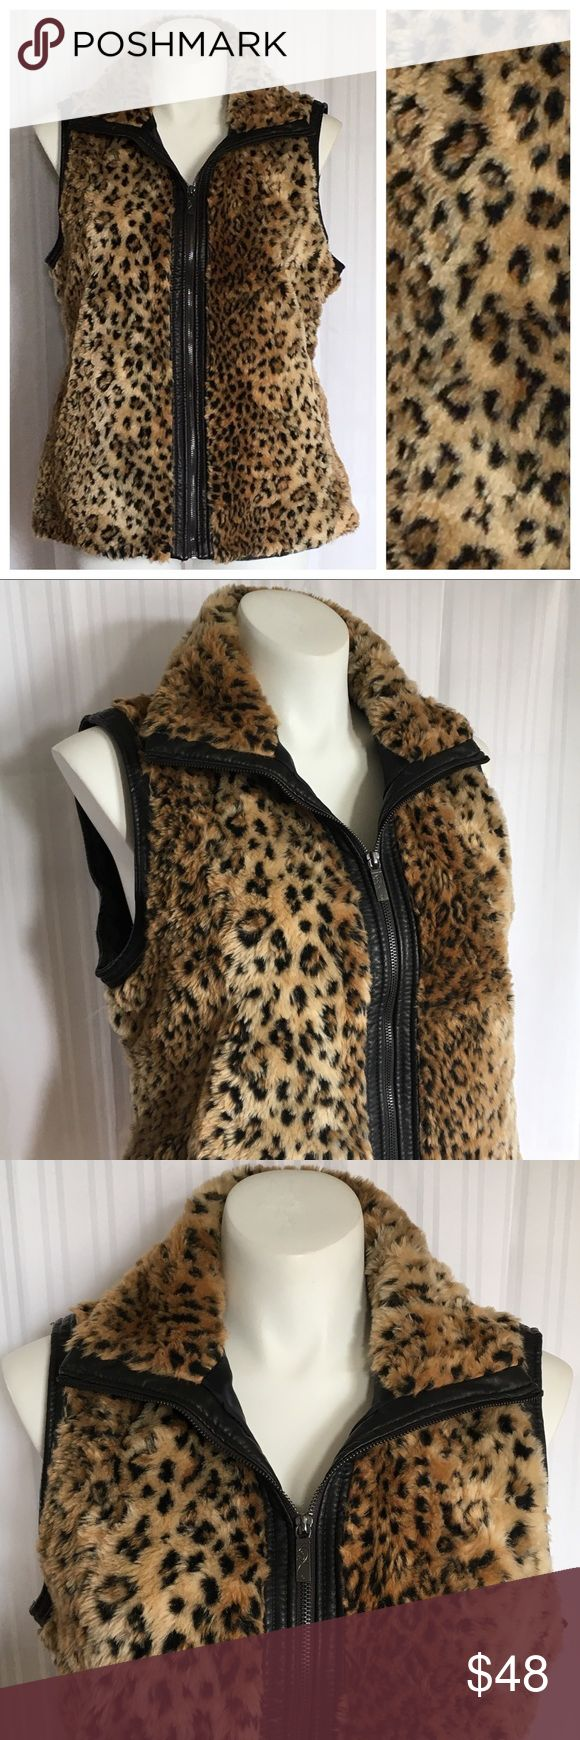 "🎉JUST IN🎉 Vegan faux fur leopard print zip vest Vegan faux fur leopard print zip vest. Plus size XL from East 5th. Bust 48"", waist 46"" (fits like an 18/20). Like new condition. 🚫No holds 🚫No Lowball Offers 🚫No Trades ✅Please submit reasonable offers via the offer button or 🎁 bundle & save! East 5th Jackets & Coats Vests"